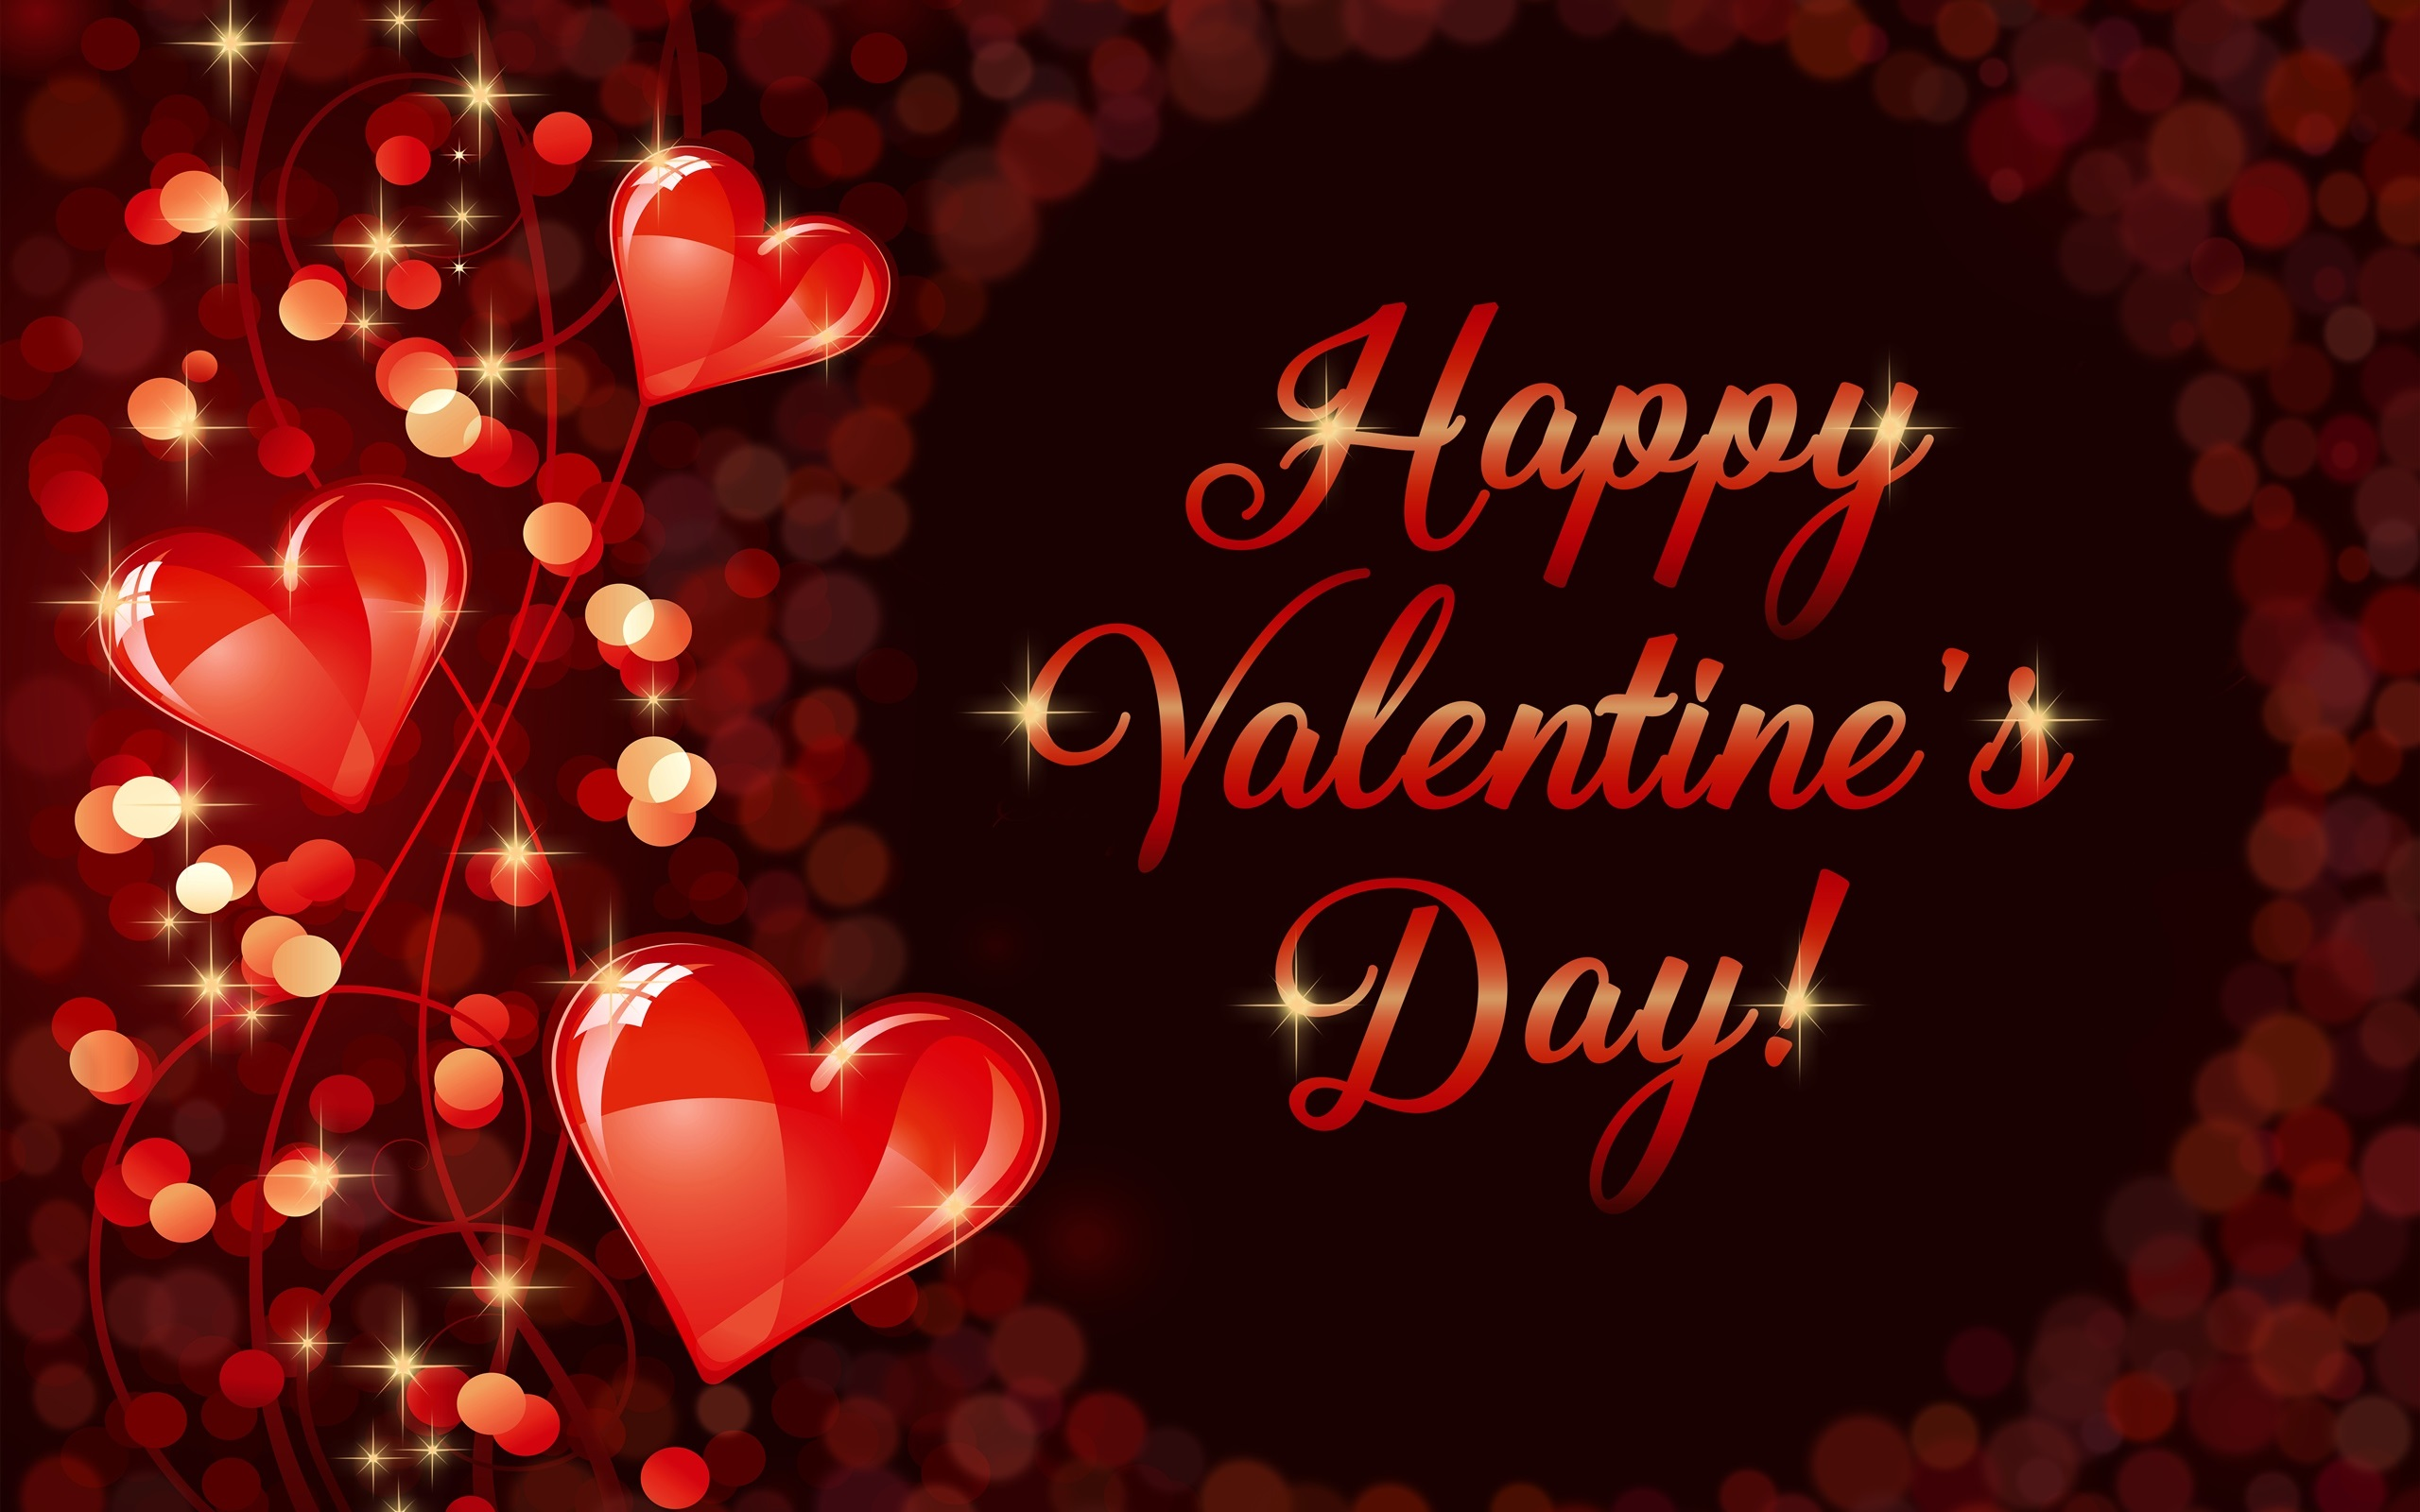 wallpaper happy valentine's day, romantic, love, hearts 2560x1600 hd